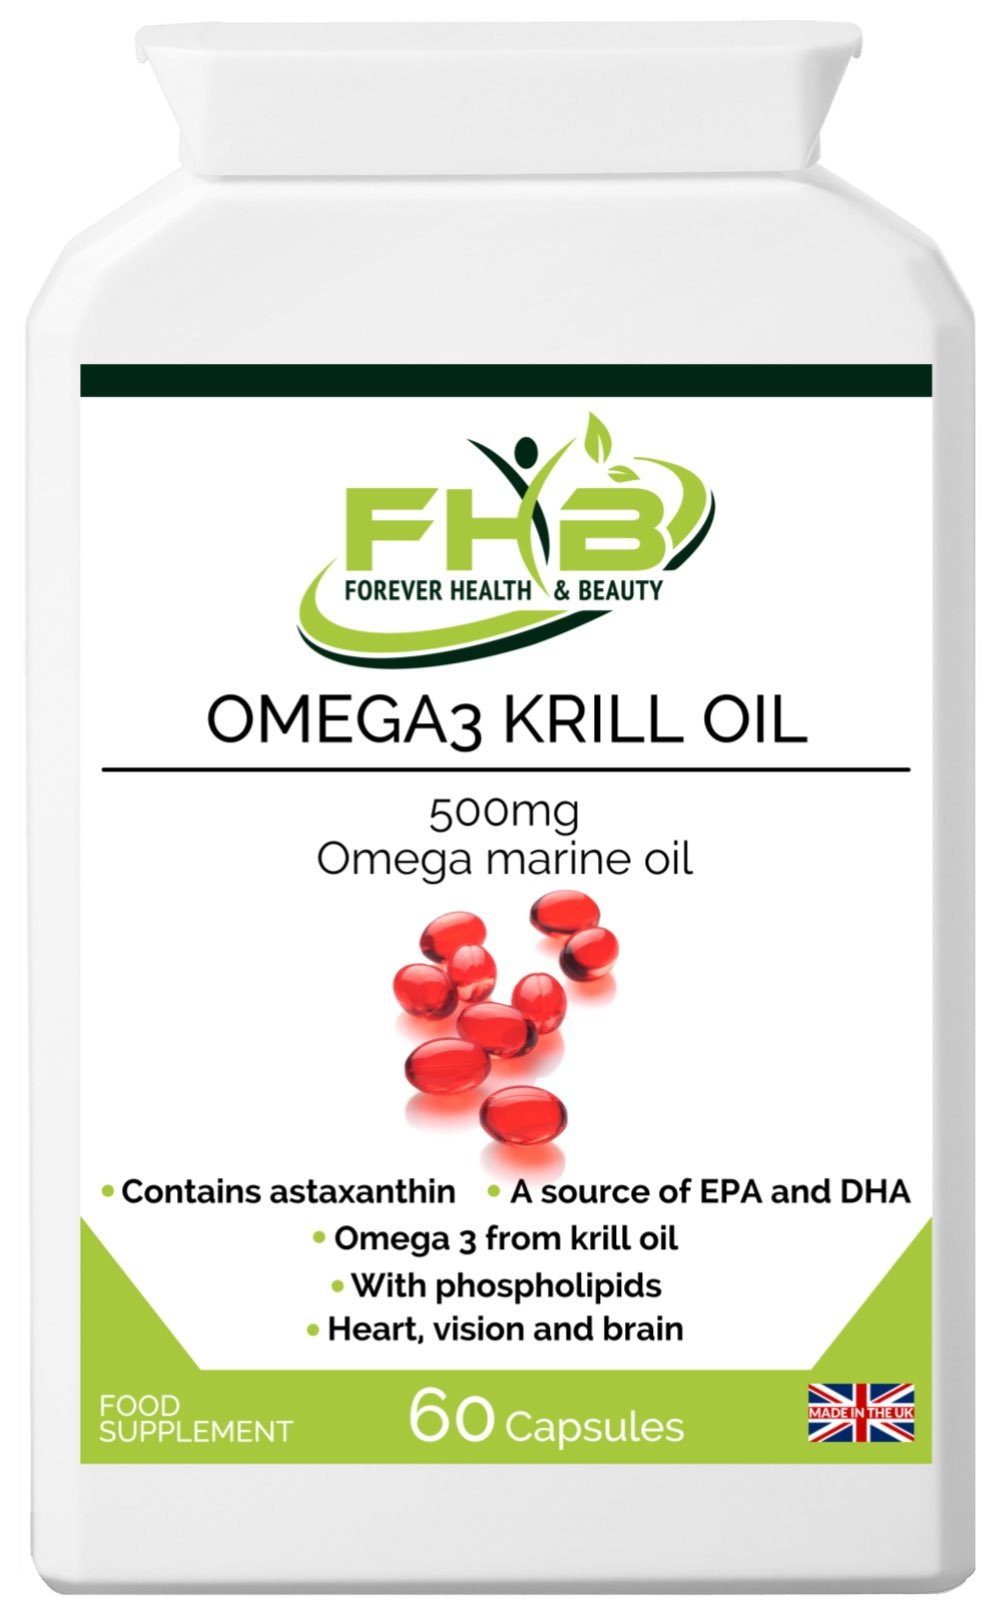 omega3-krill-oil-omega-3-fish-oil-pills-for-healthy-heart-brain-function